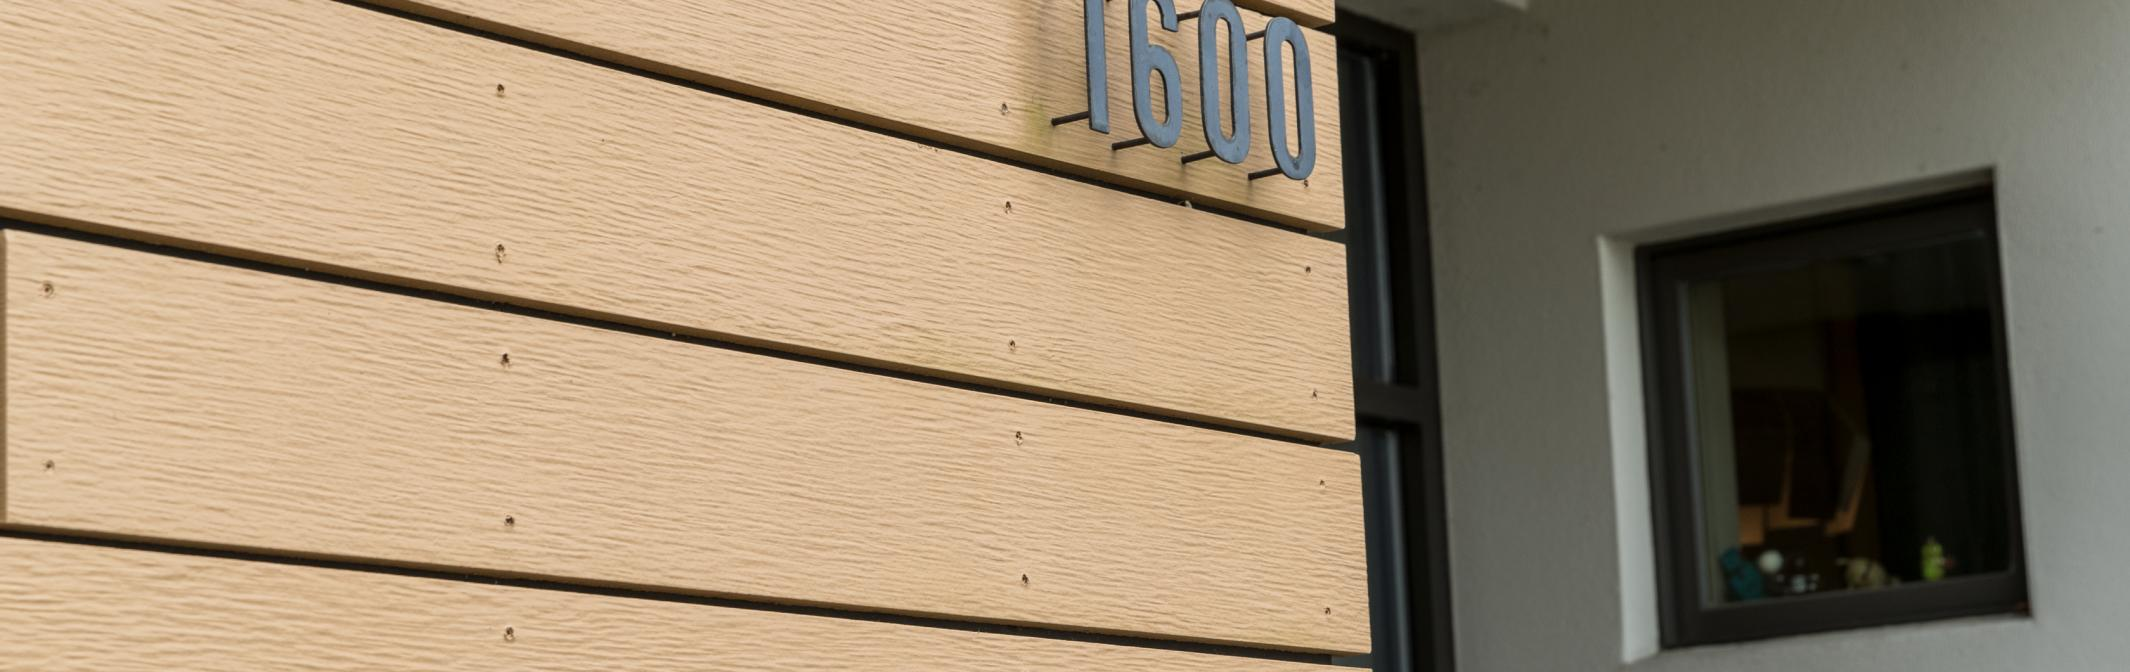 House Number 1600